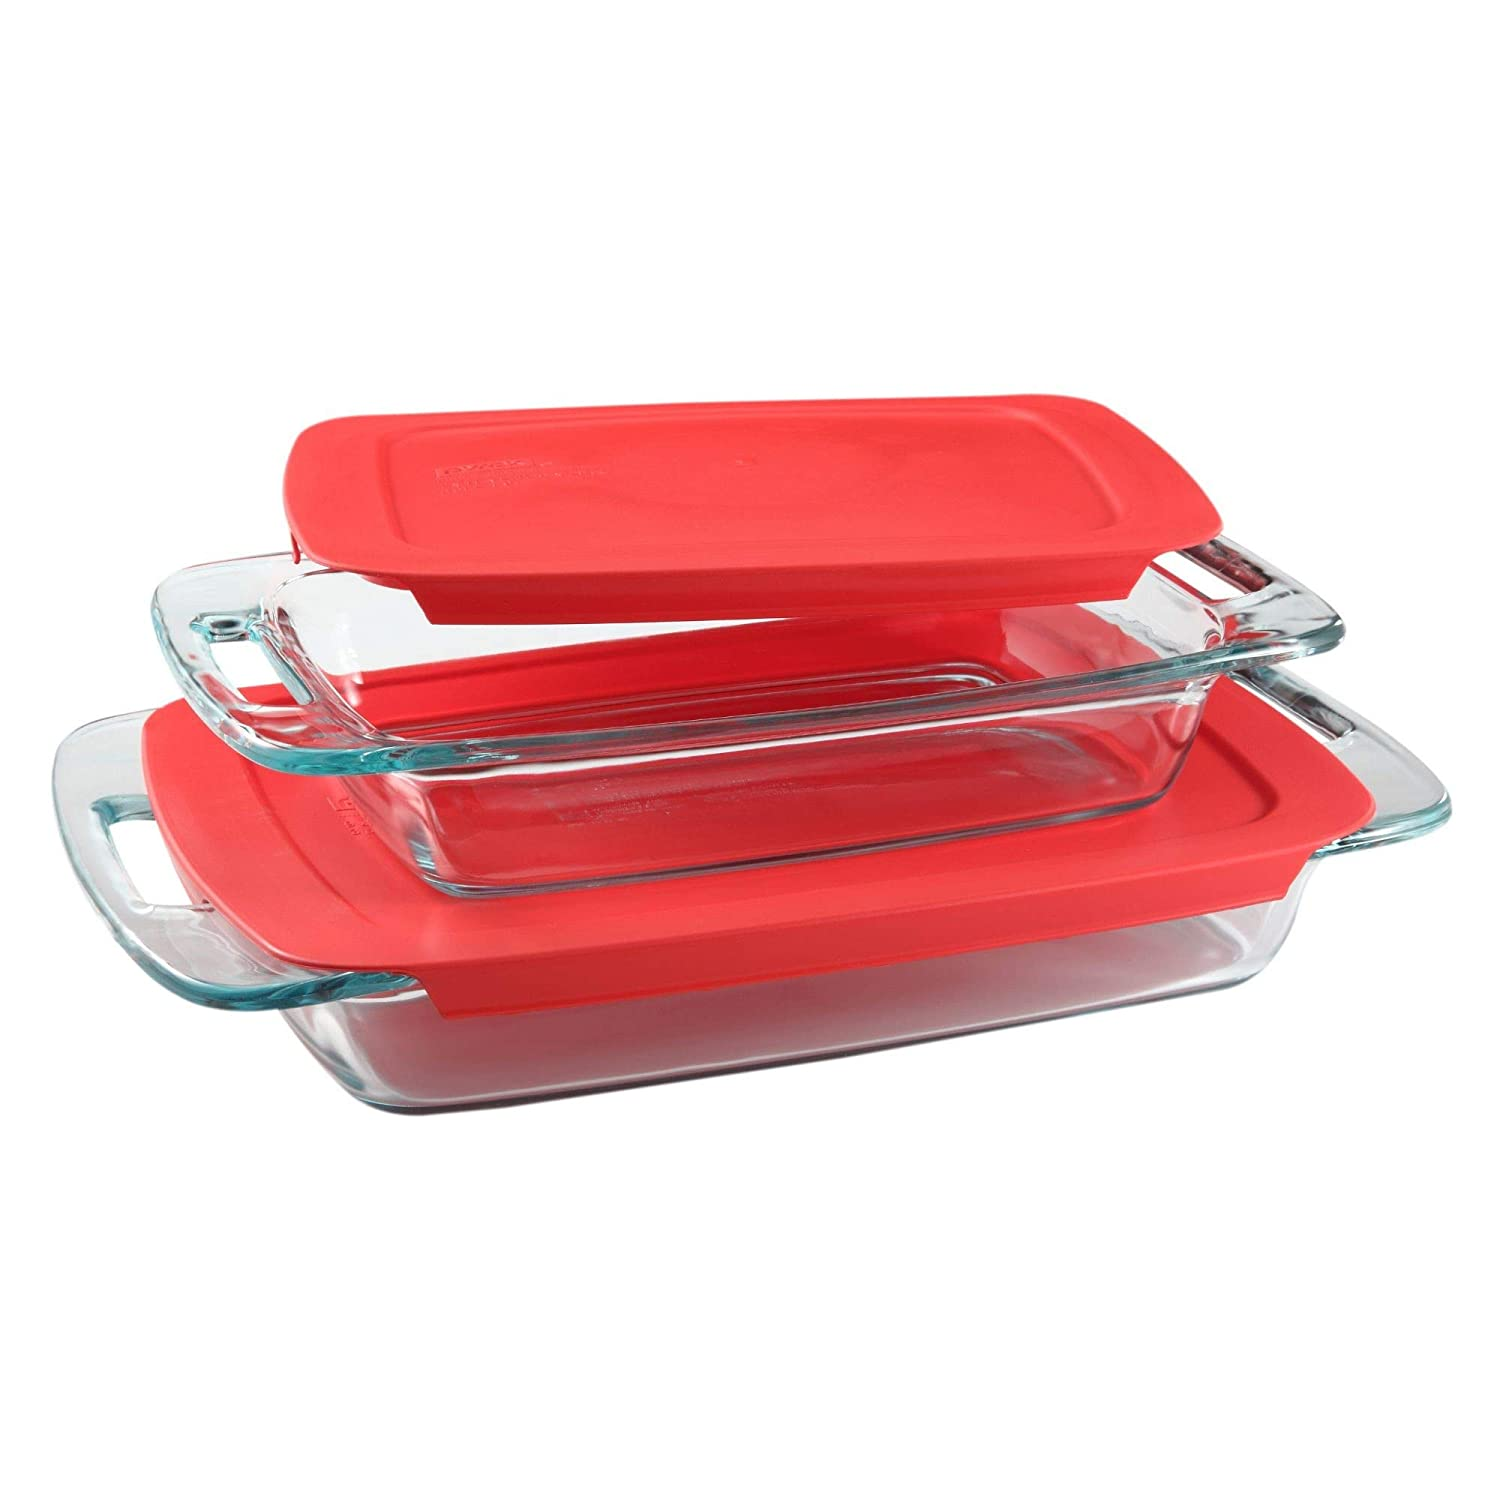 Pyrex Easy Grab 4-piece Oblong Baking Dish Set